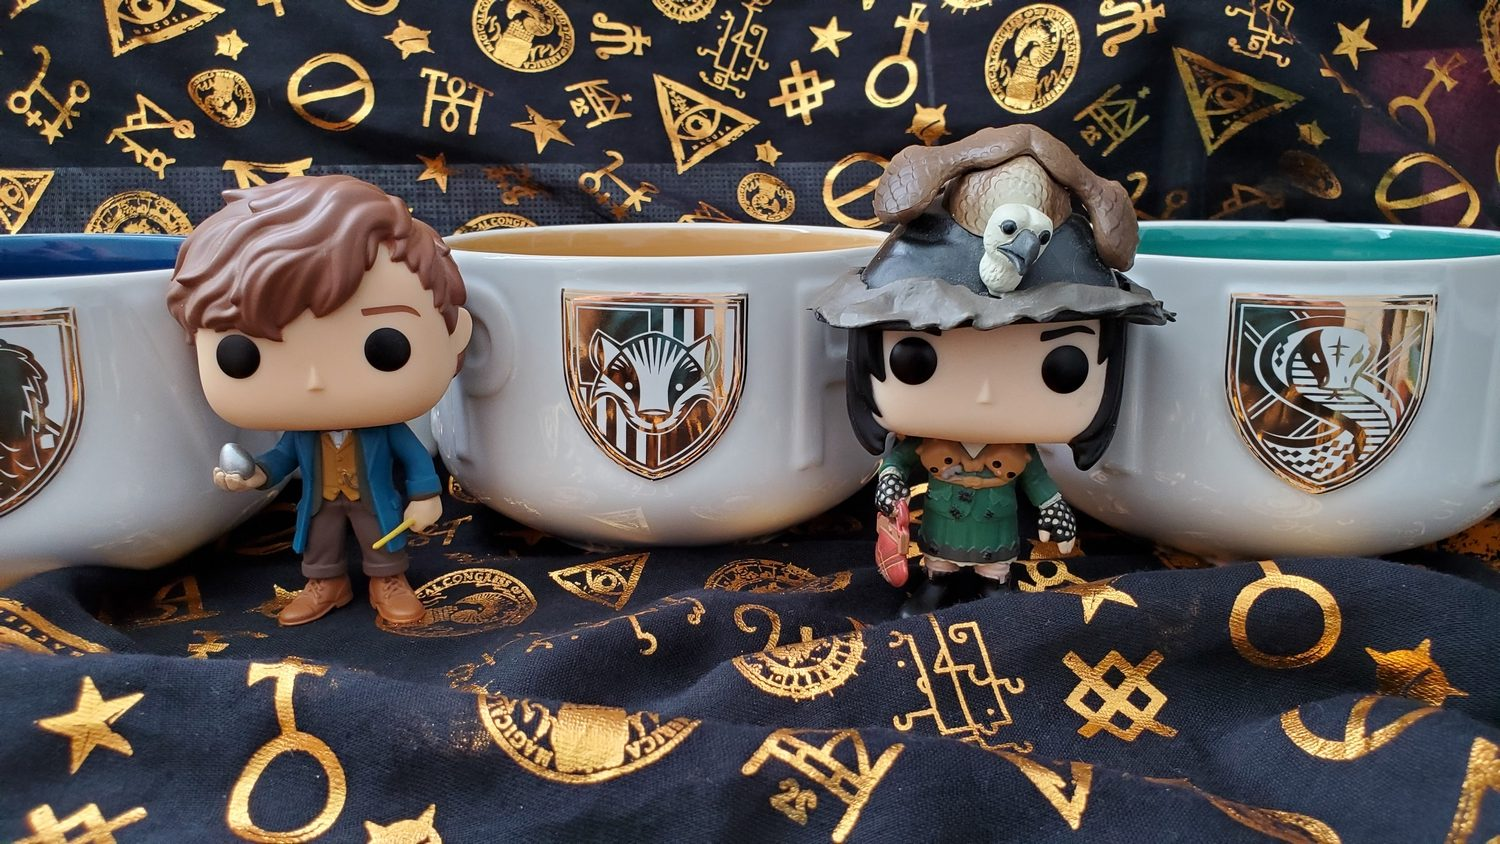 Harry Potter Soup Mugs from Hallmark Gold Crown – Ravenclaw, Hufflepuff, and Slytherin, featuring Newt Scamander and Snape as Neville's grandmother Funko POP!s